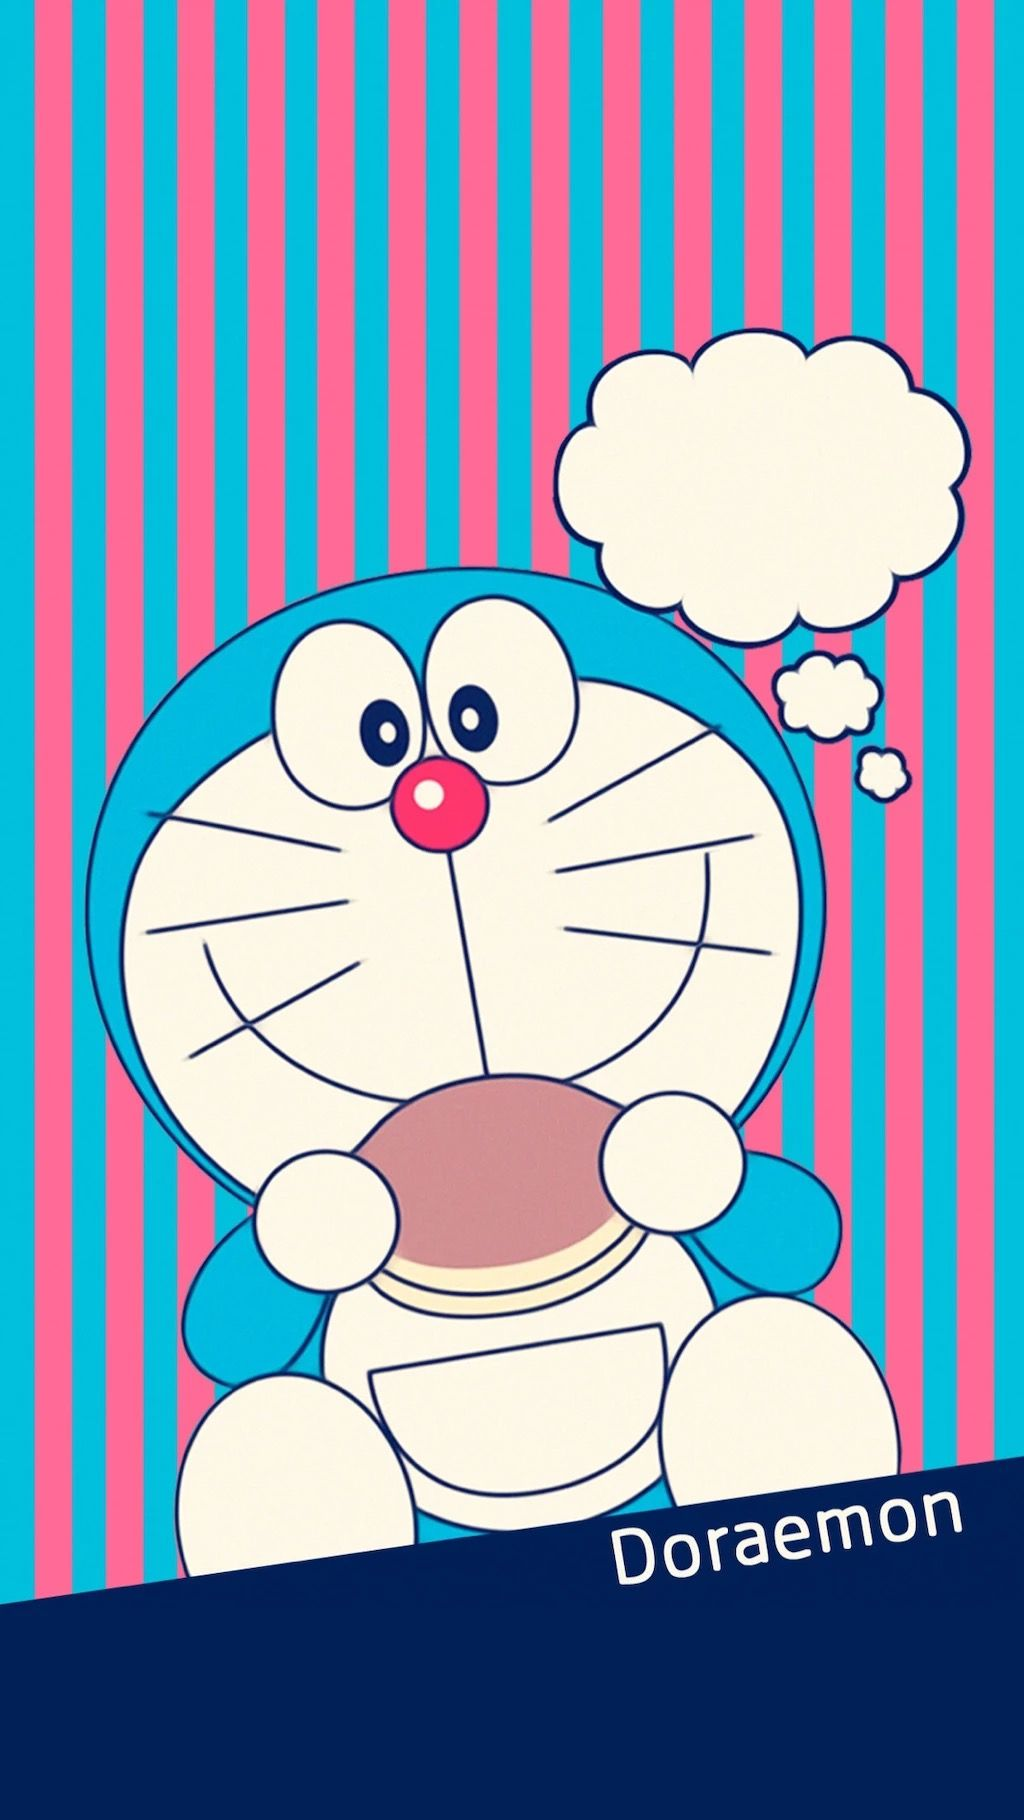 Unduh 54 Wallpaper Doraemon Warna Biru HD Terbaru